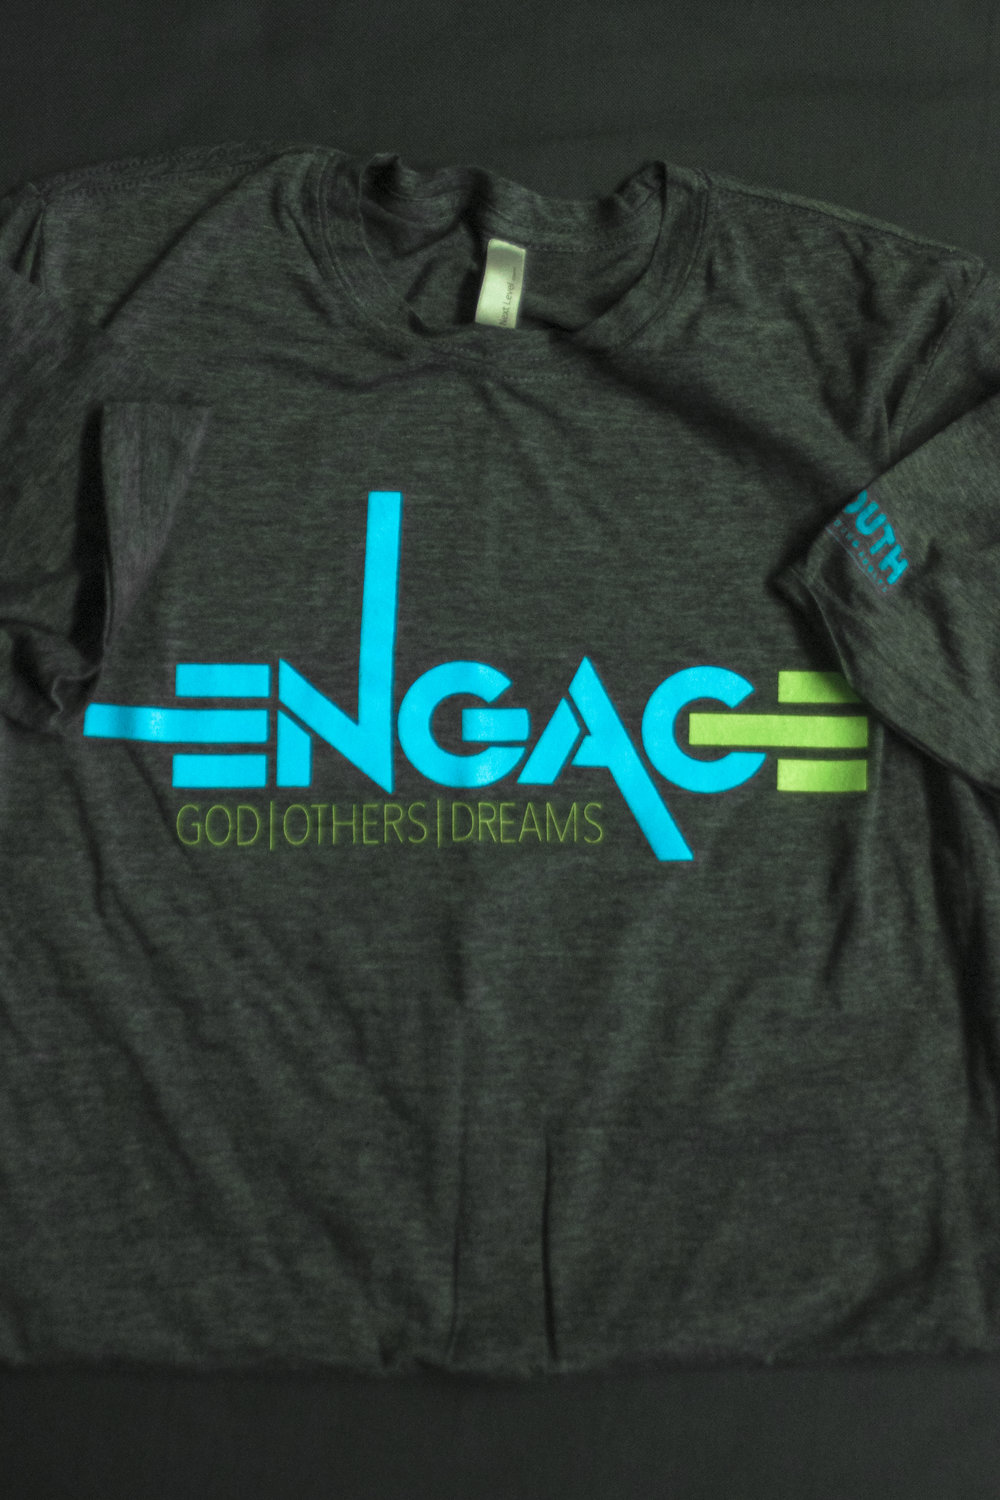 ENGAGE CONFERENCE -  GOD|OTHERS|DREAMS TEE    $10.00